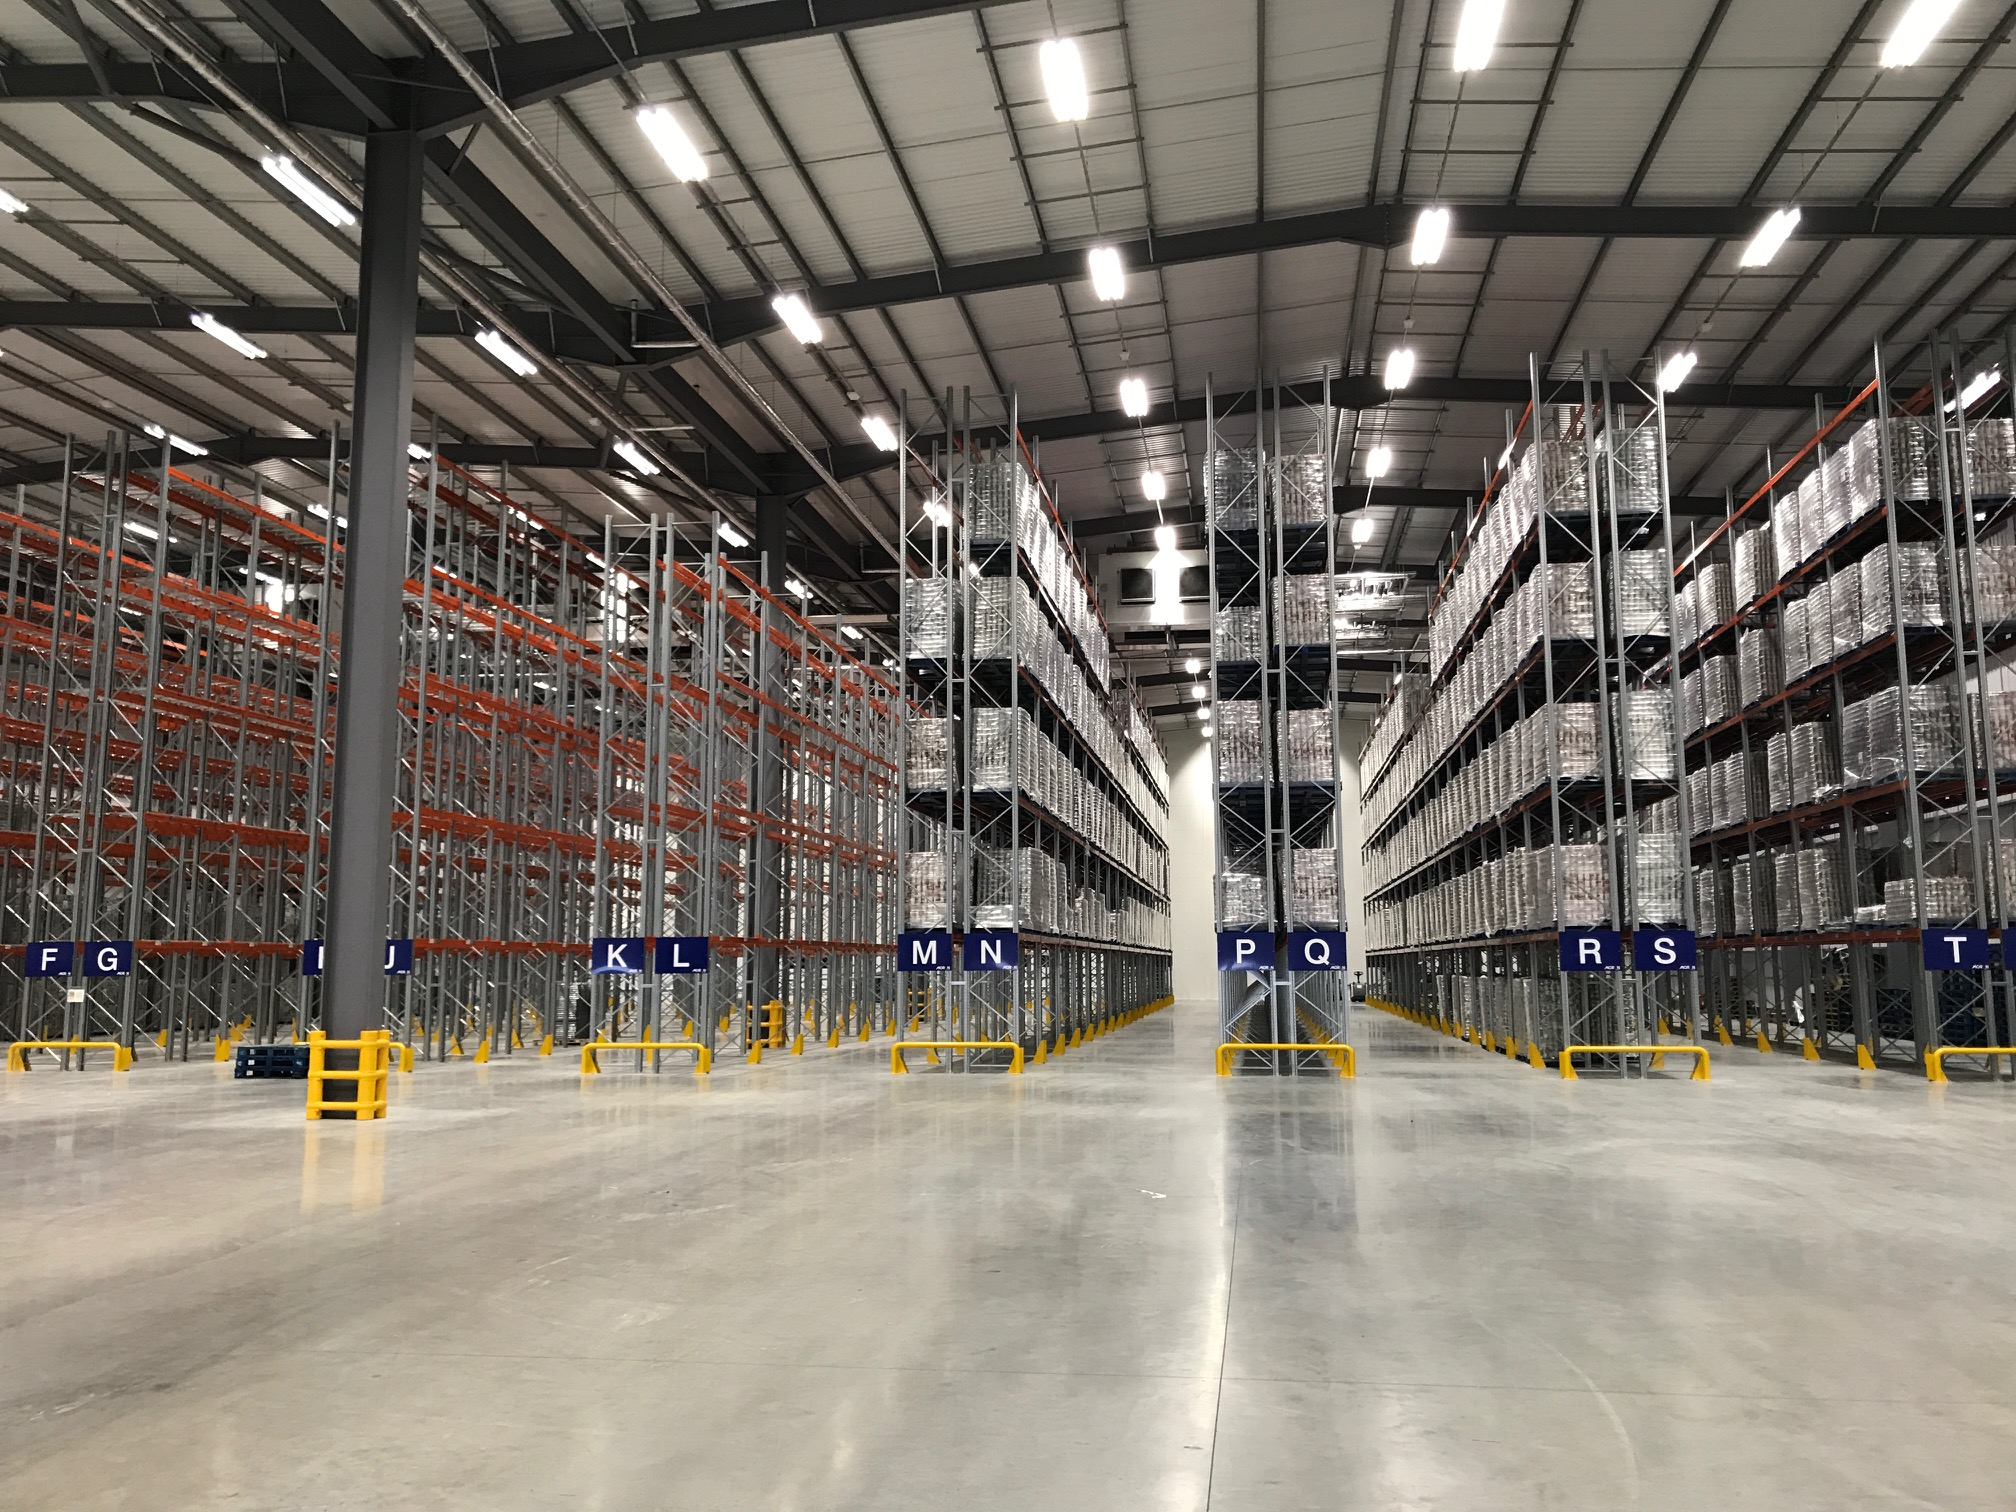 Adjustable Pallet Racking – What Is It?